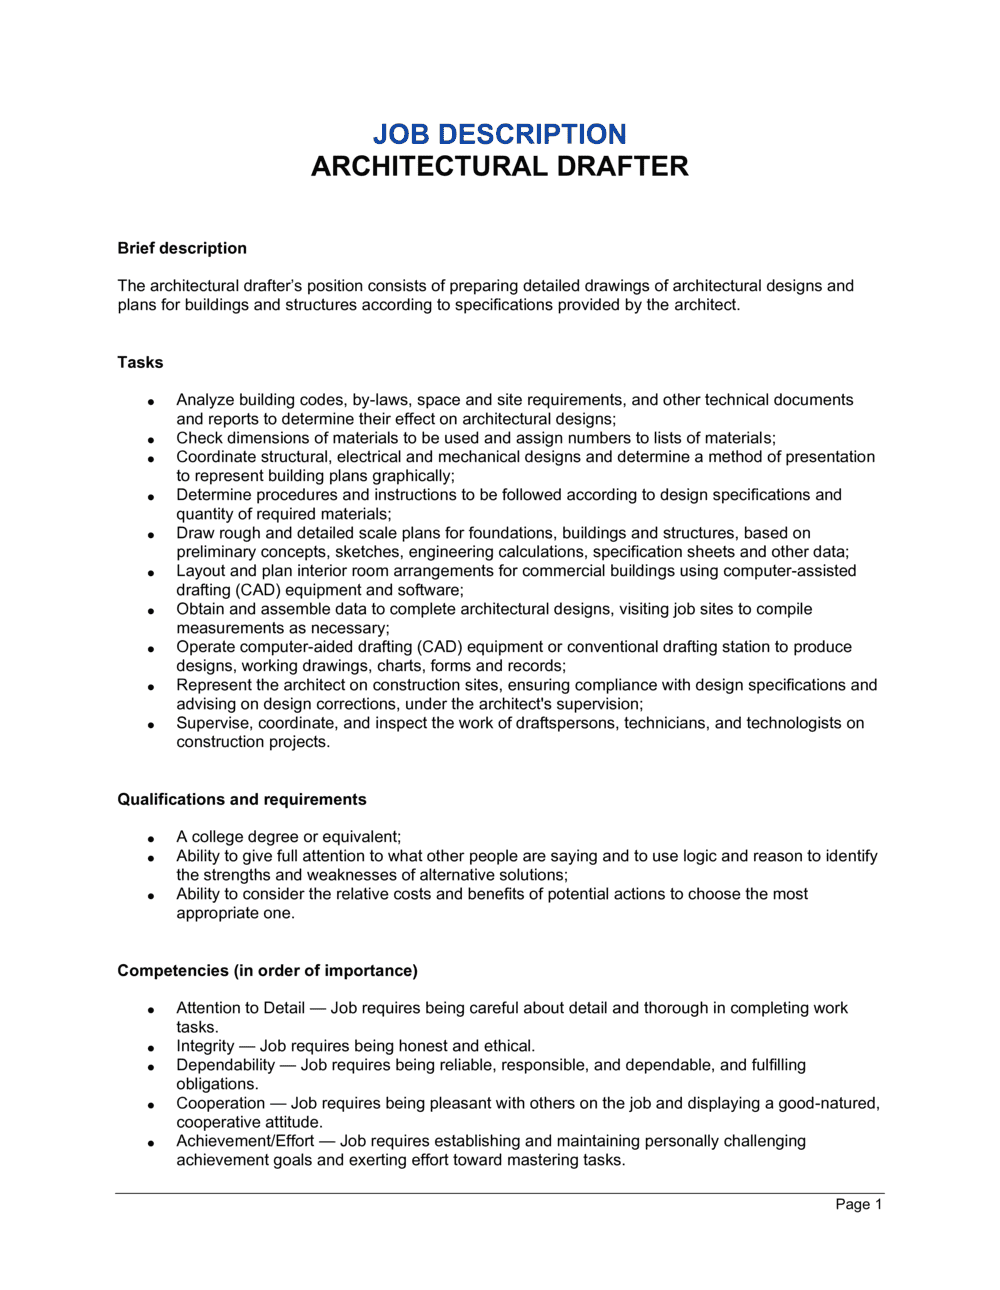 Business-in-a-Box's Architectural Drafter Job Description Template